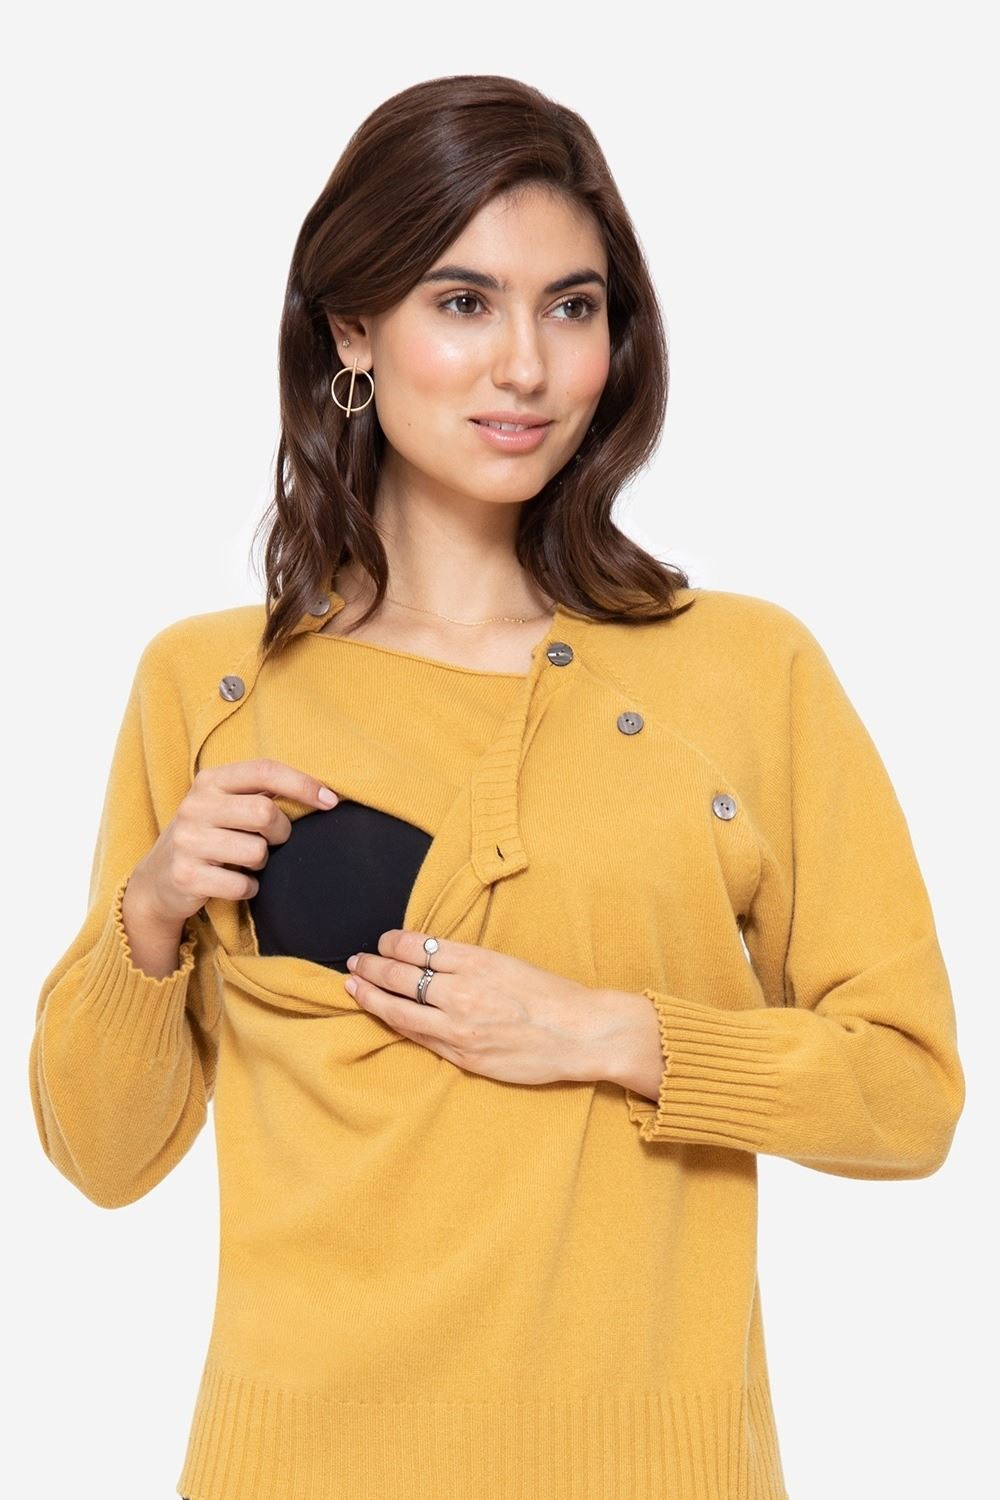 Soft cashmere nursing jumper in yellow with buttons, access for breastfeeding